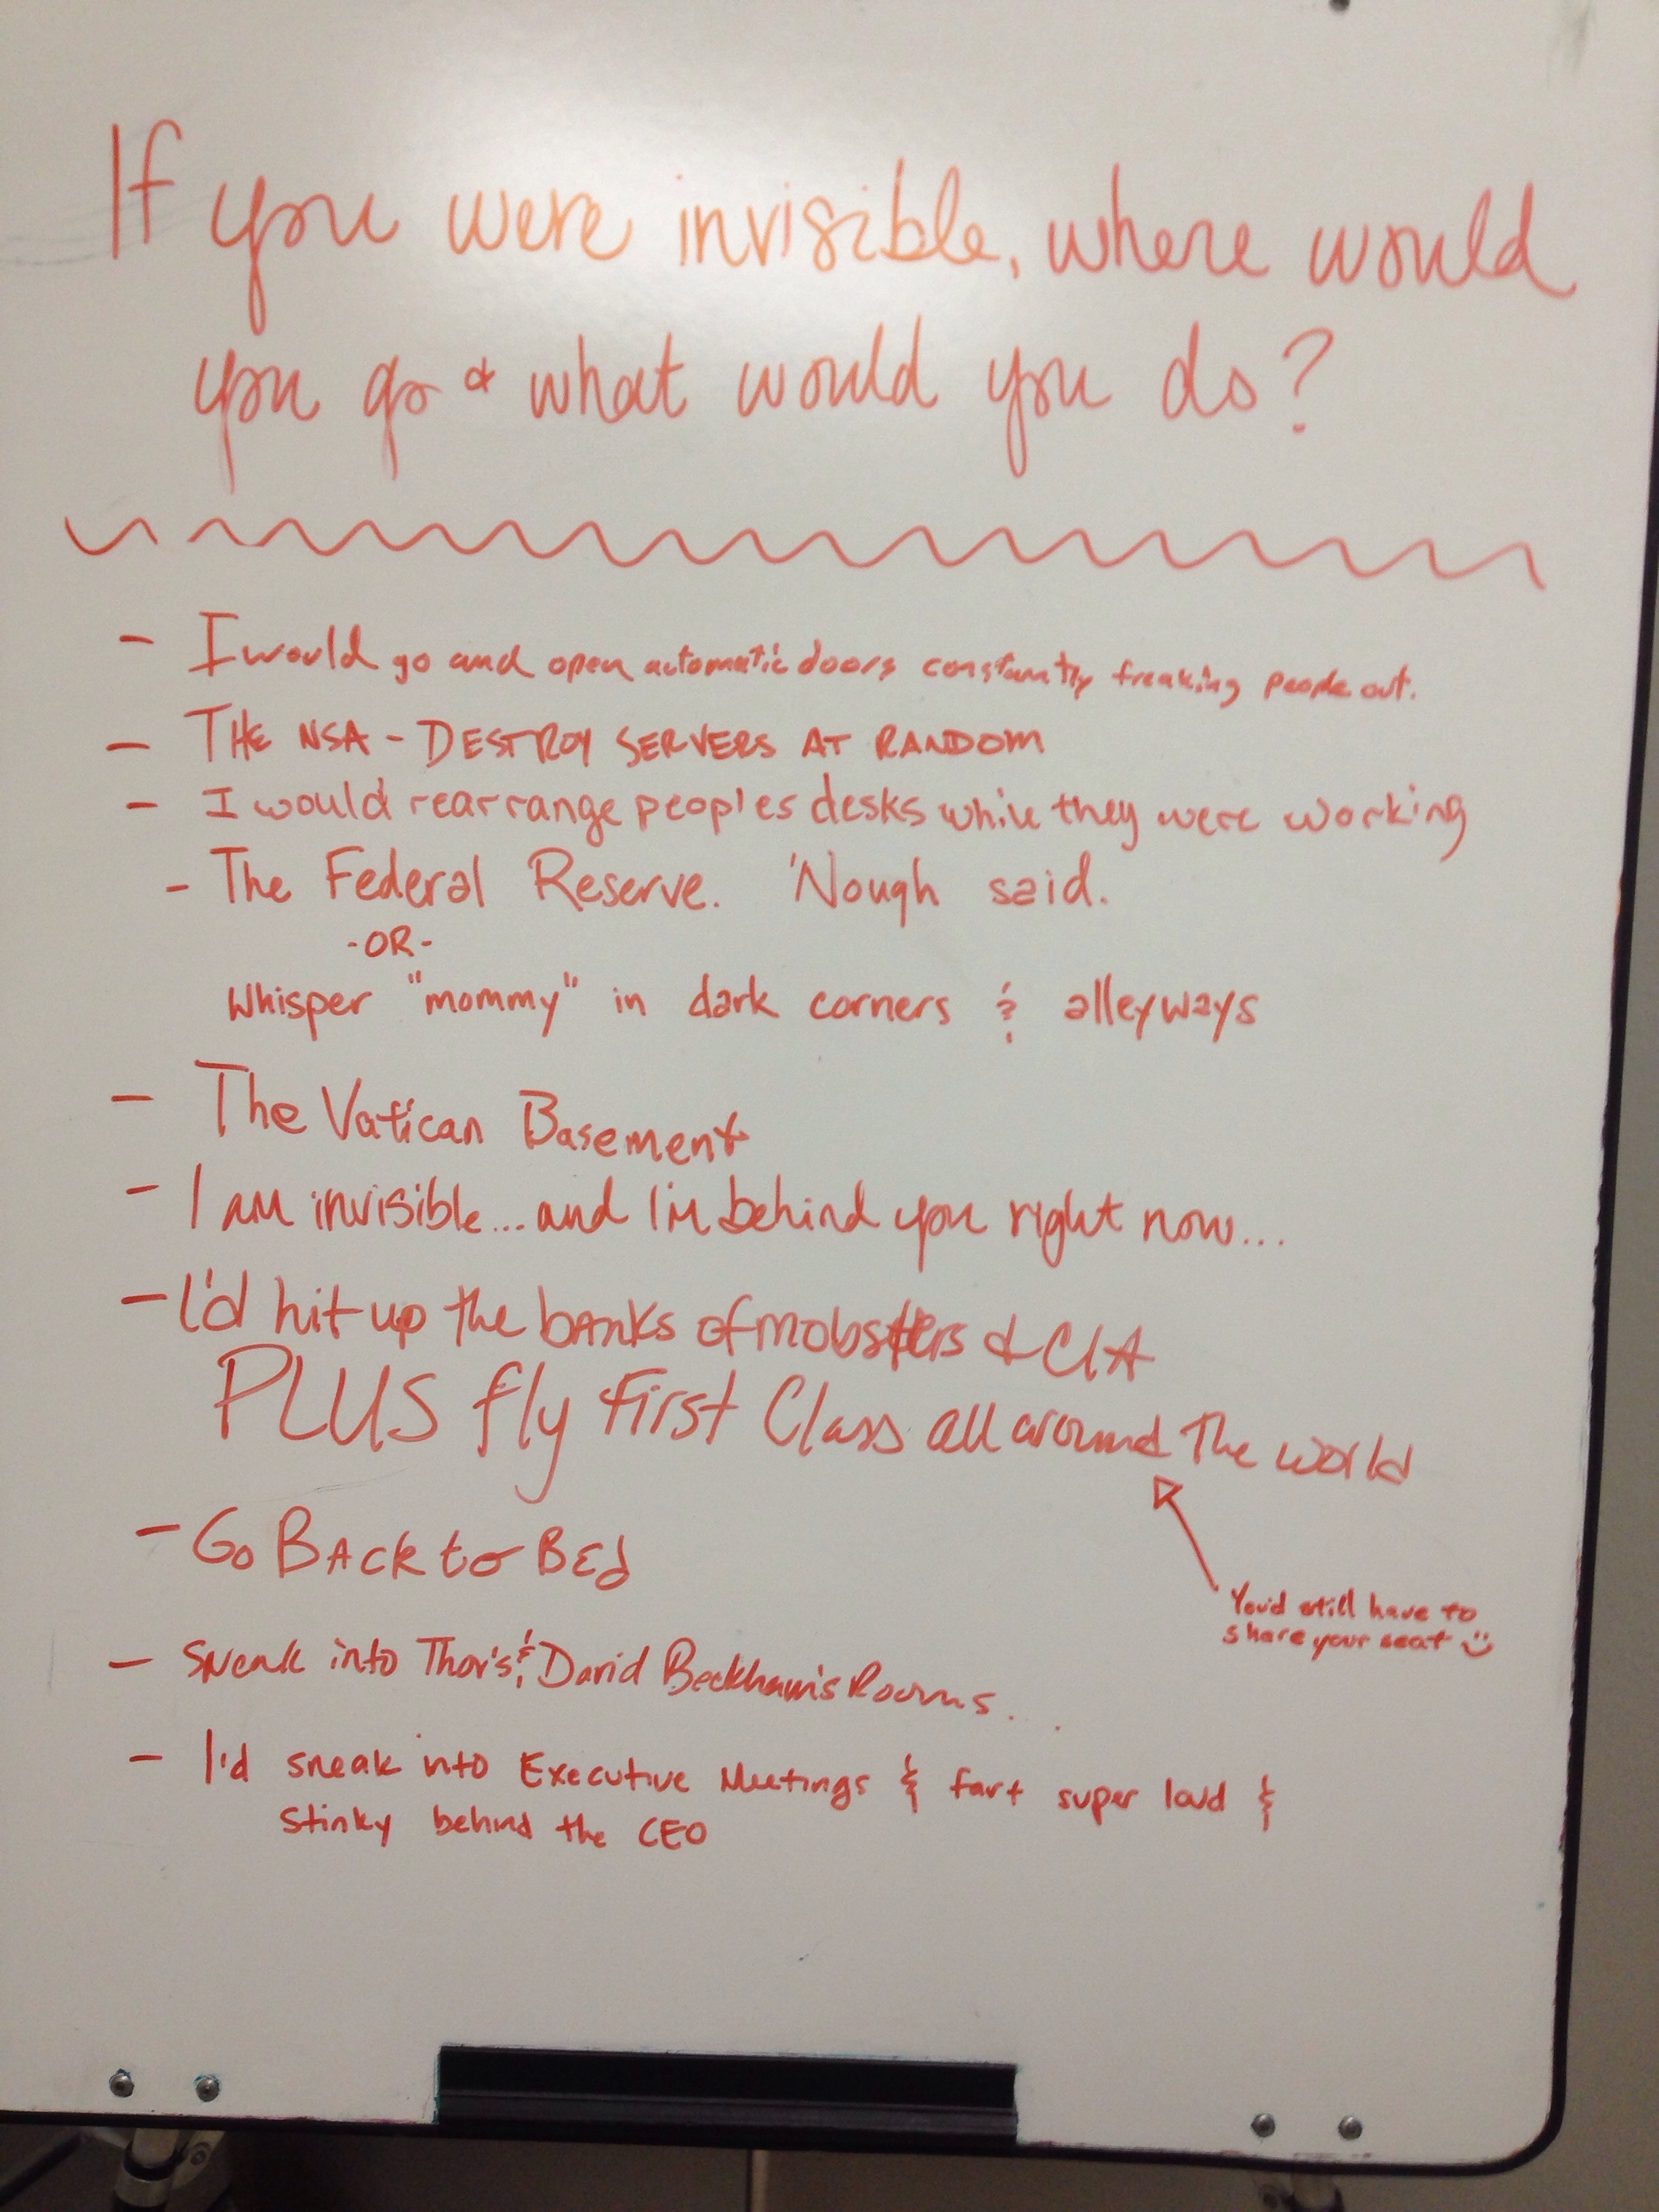 the life and times of cldar break room board 4 if you were invisible where would you go and what would you do